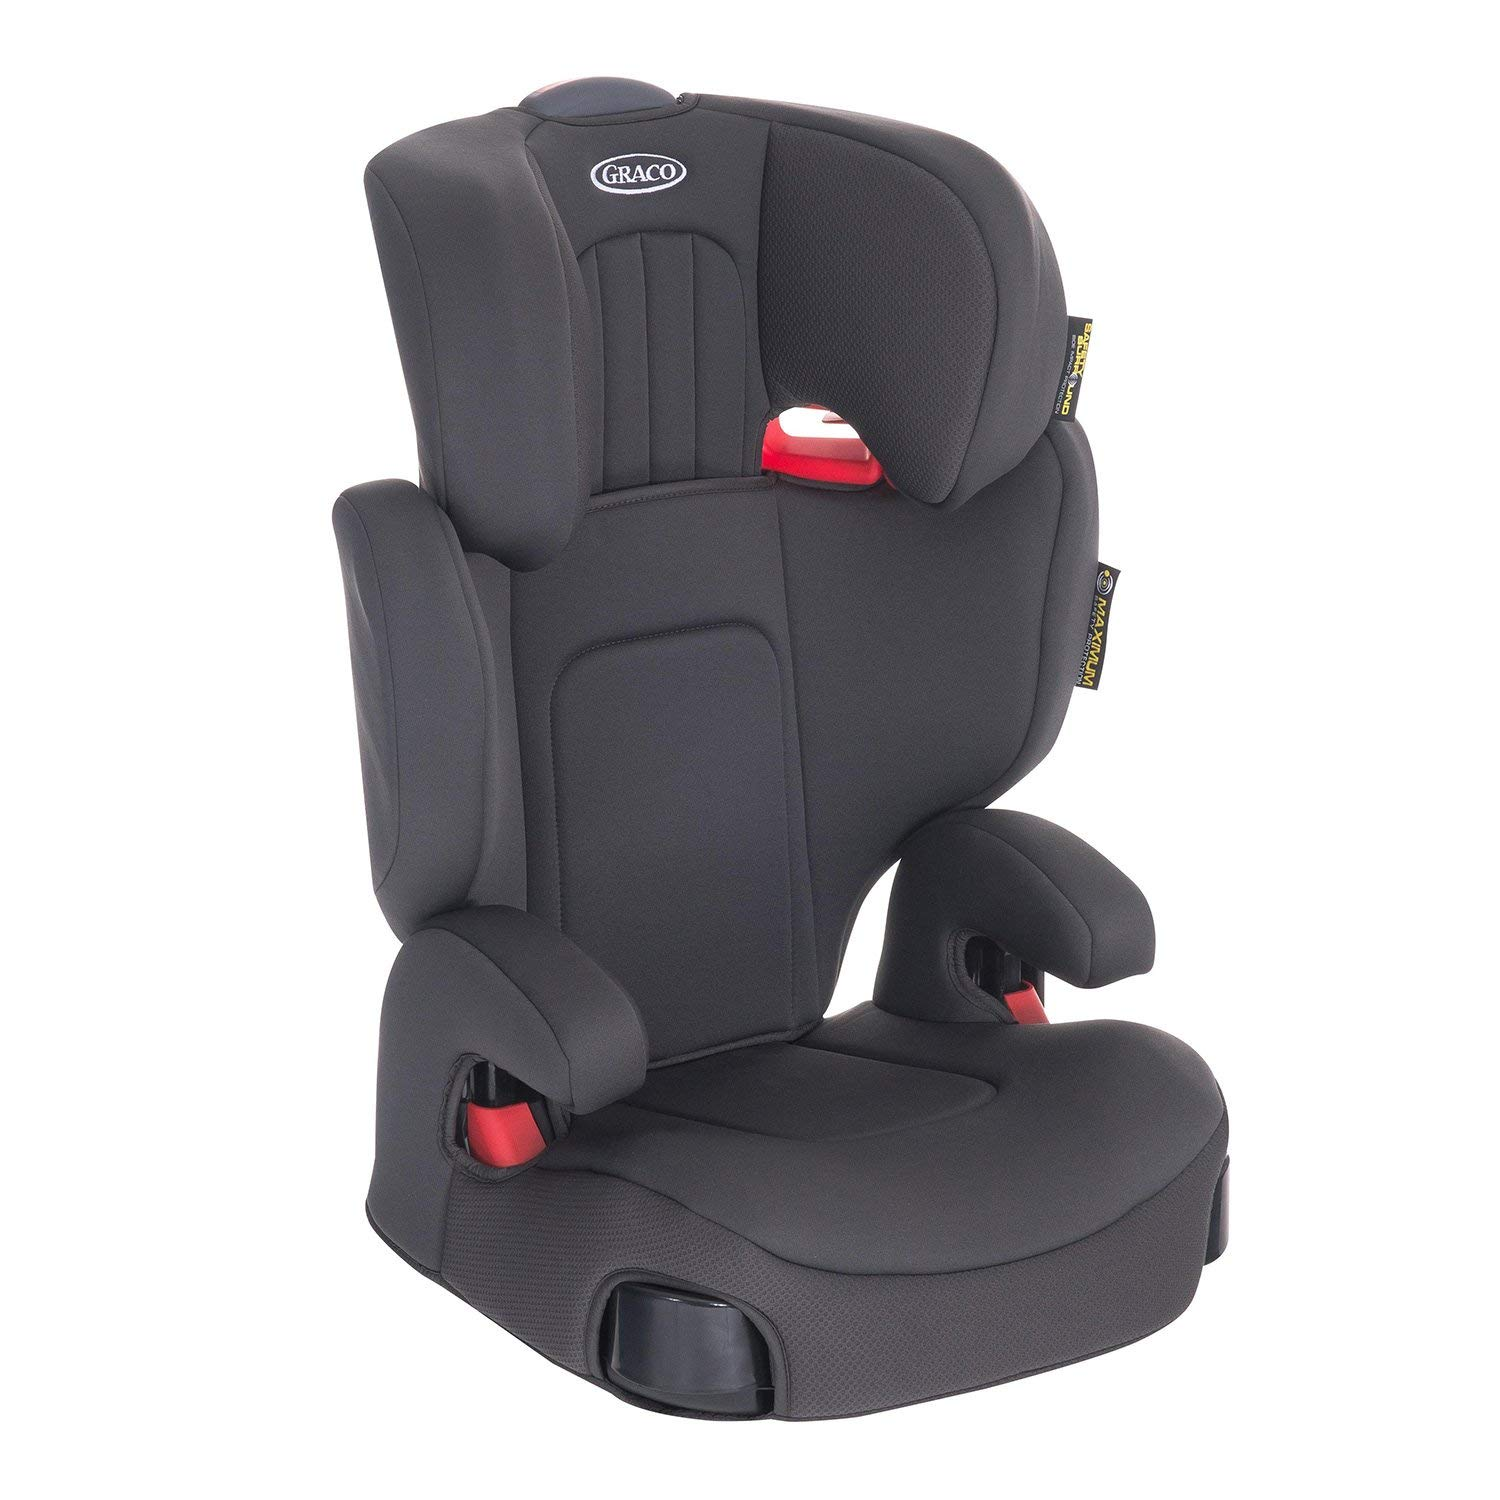 Lot 54 - Brand new Graco Assure GRP 2/3 Booster Car Seat, Midnight Grey